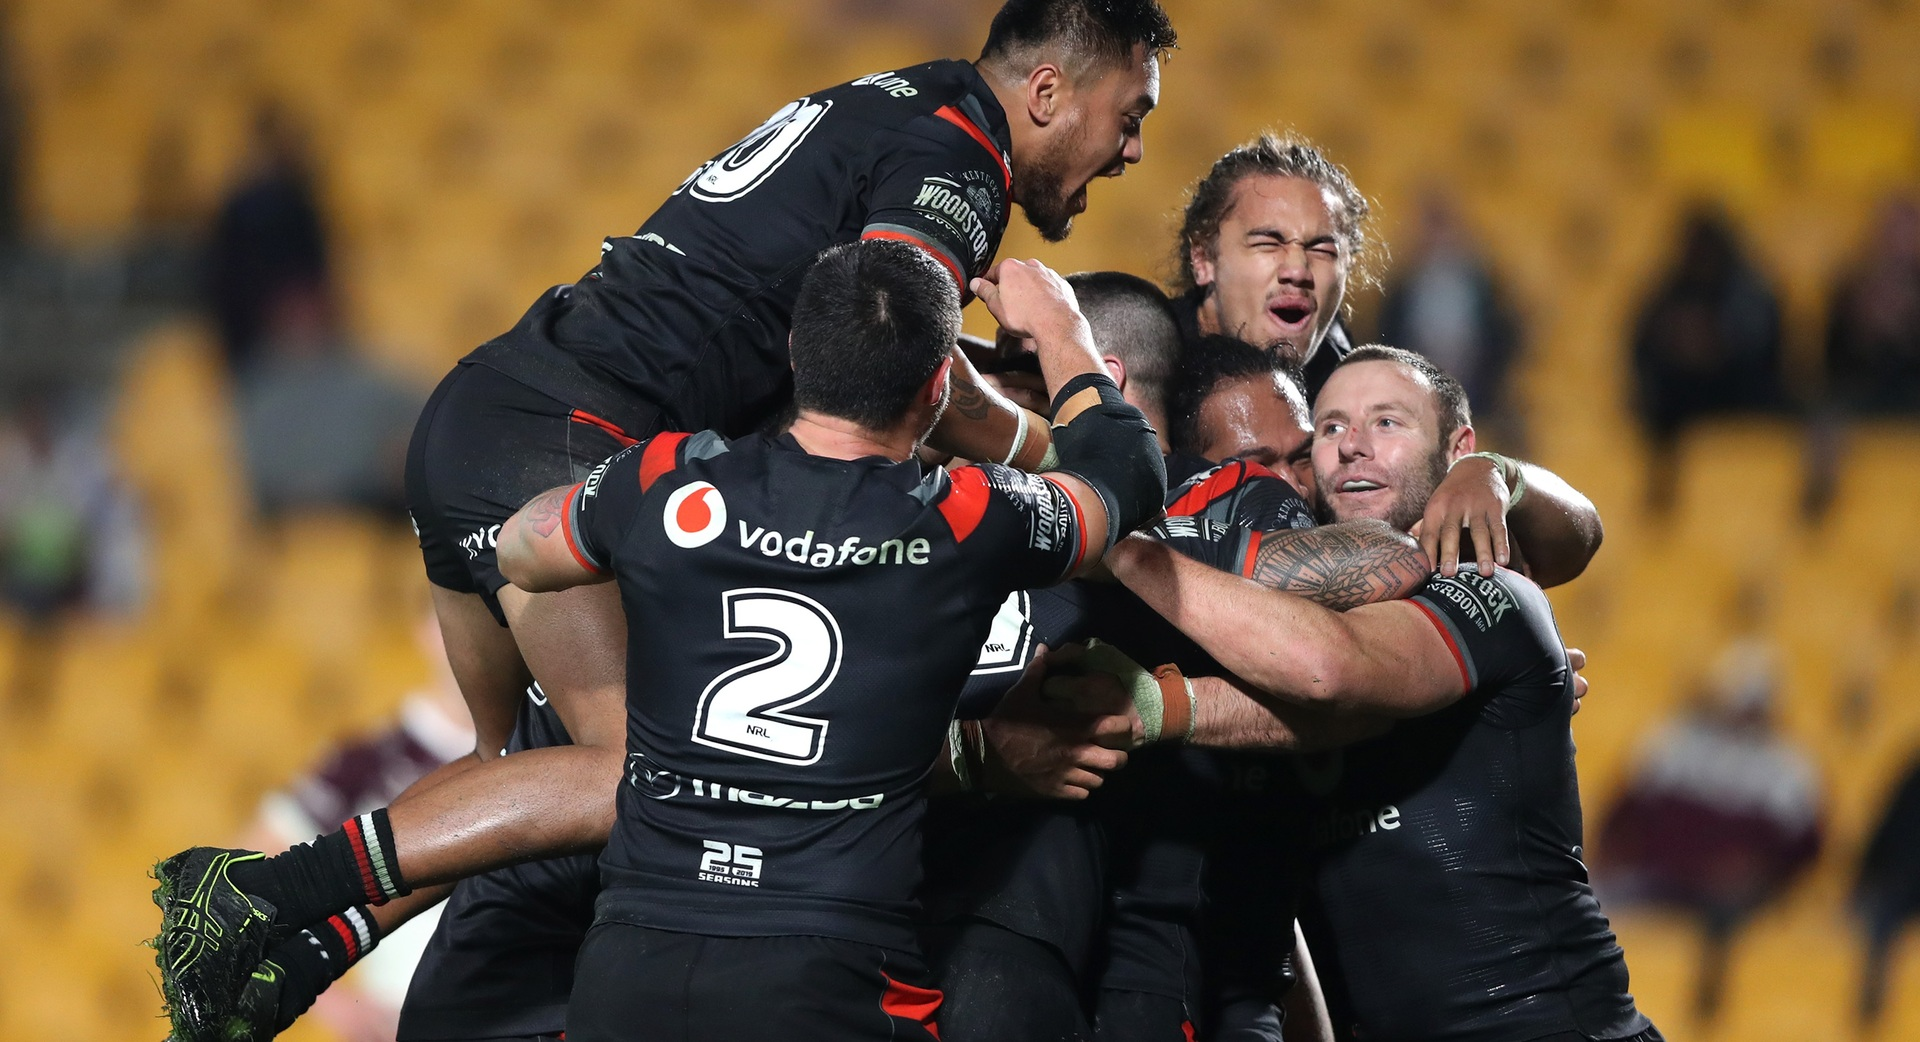 Rugby league: New Zealand Warriors claim shock NRL win over Manly Sea Eagles